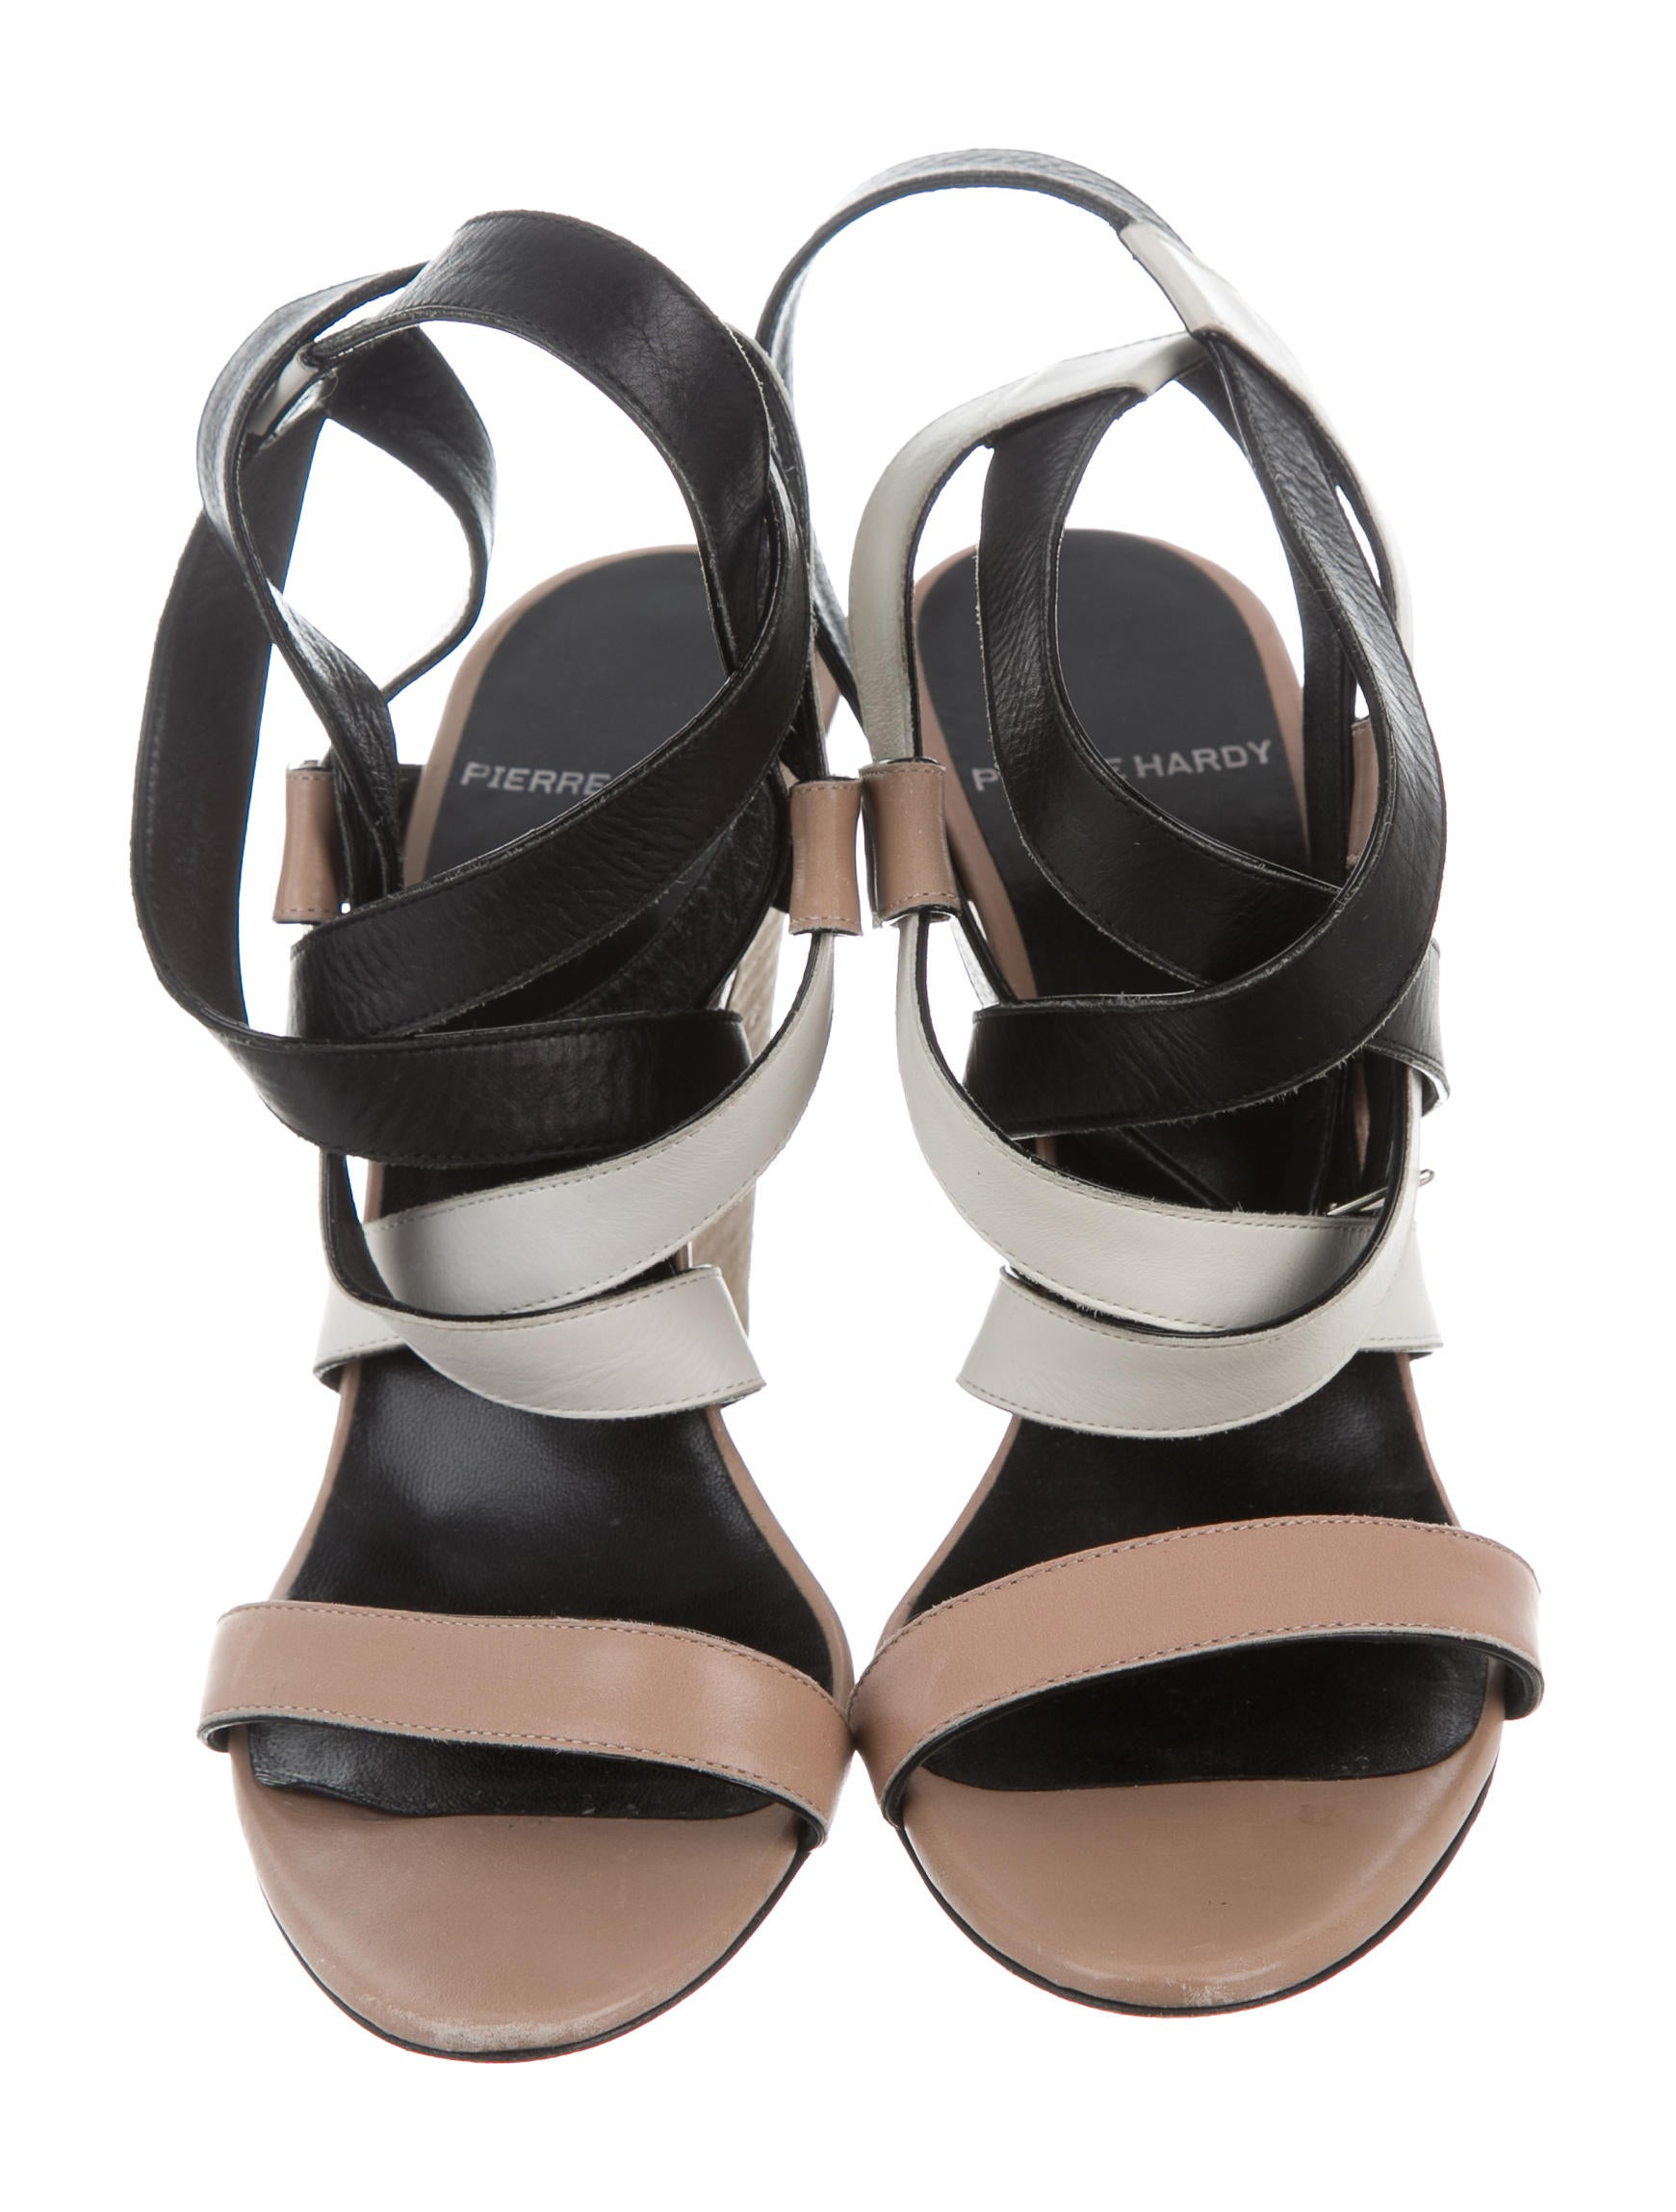 pierre hardy leather multistrap sandals shoes pie23469 the realreal. Black Bedroom Furniture Sets. Home Design Ideas